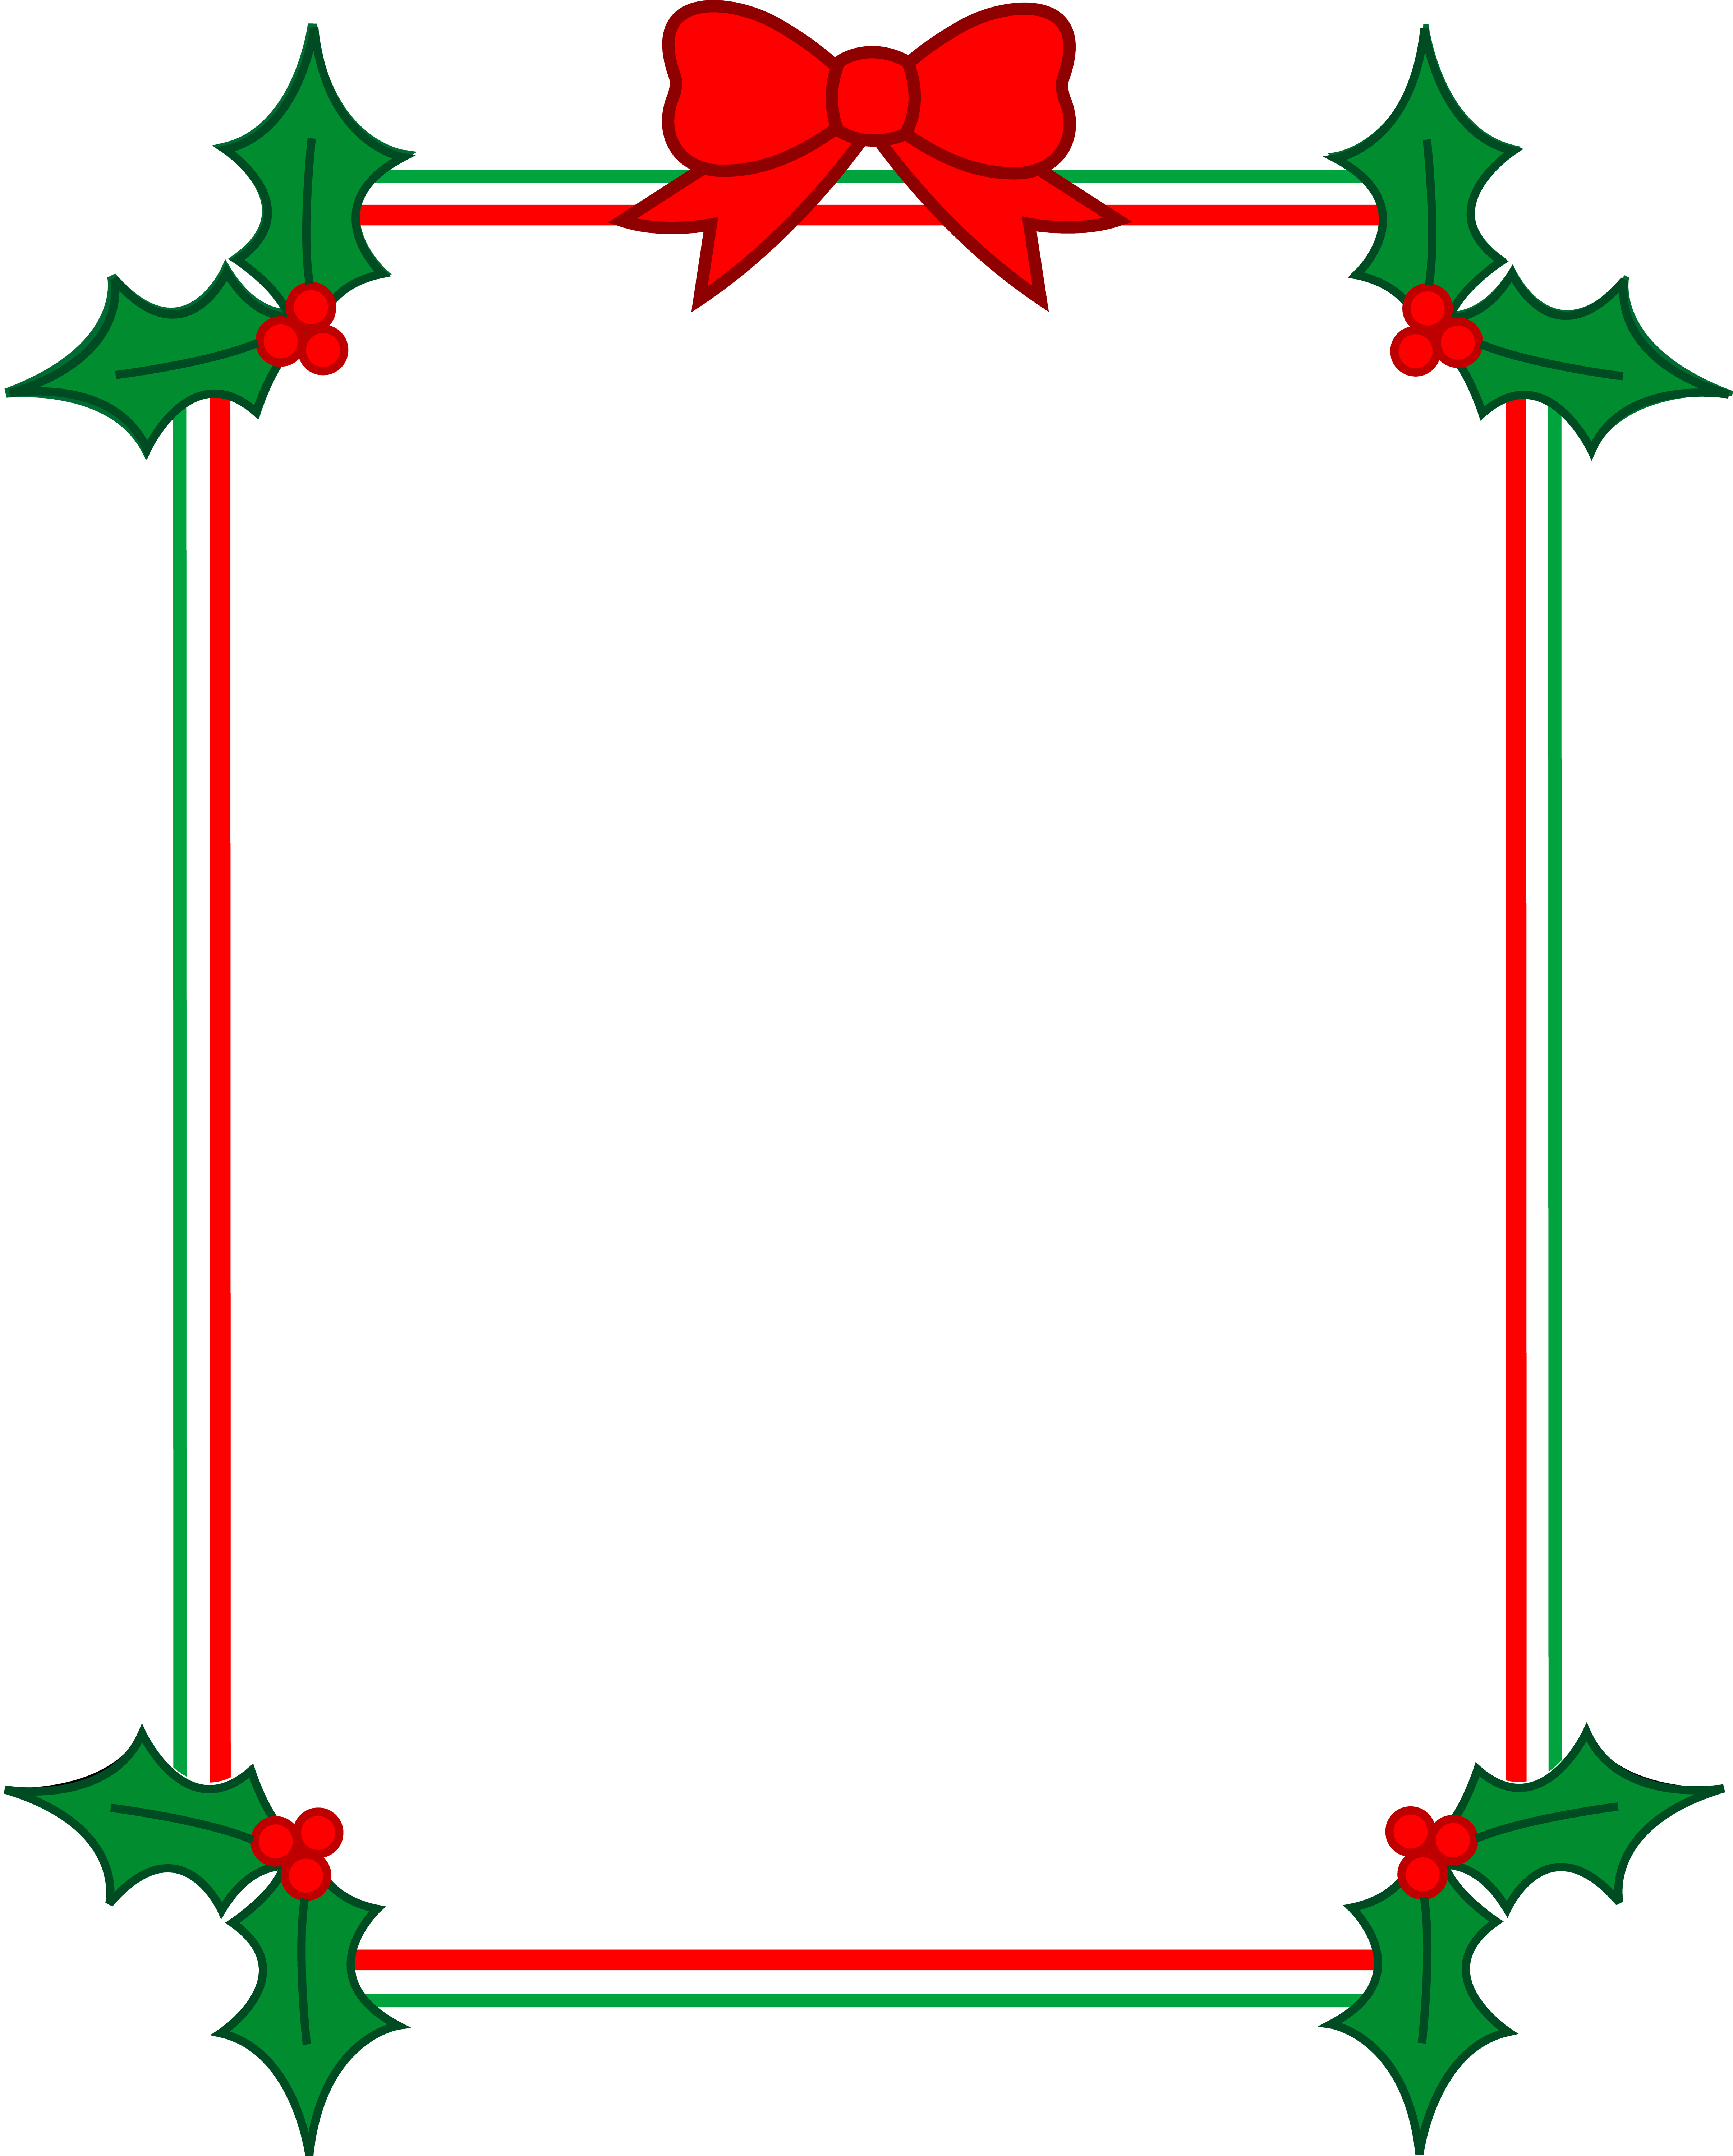 Christmas borders png. Border for word document